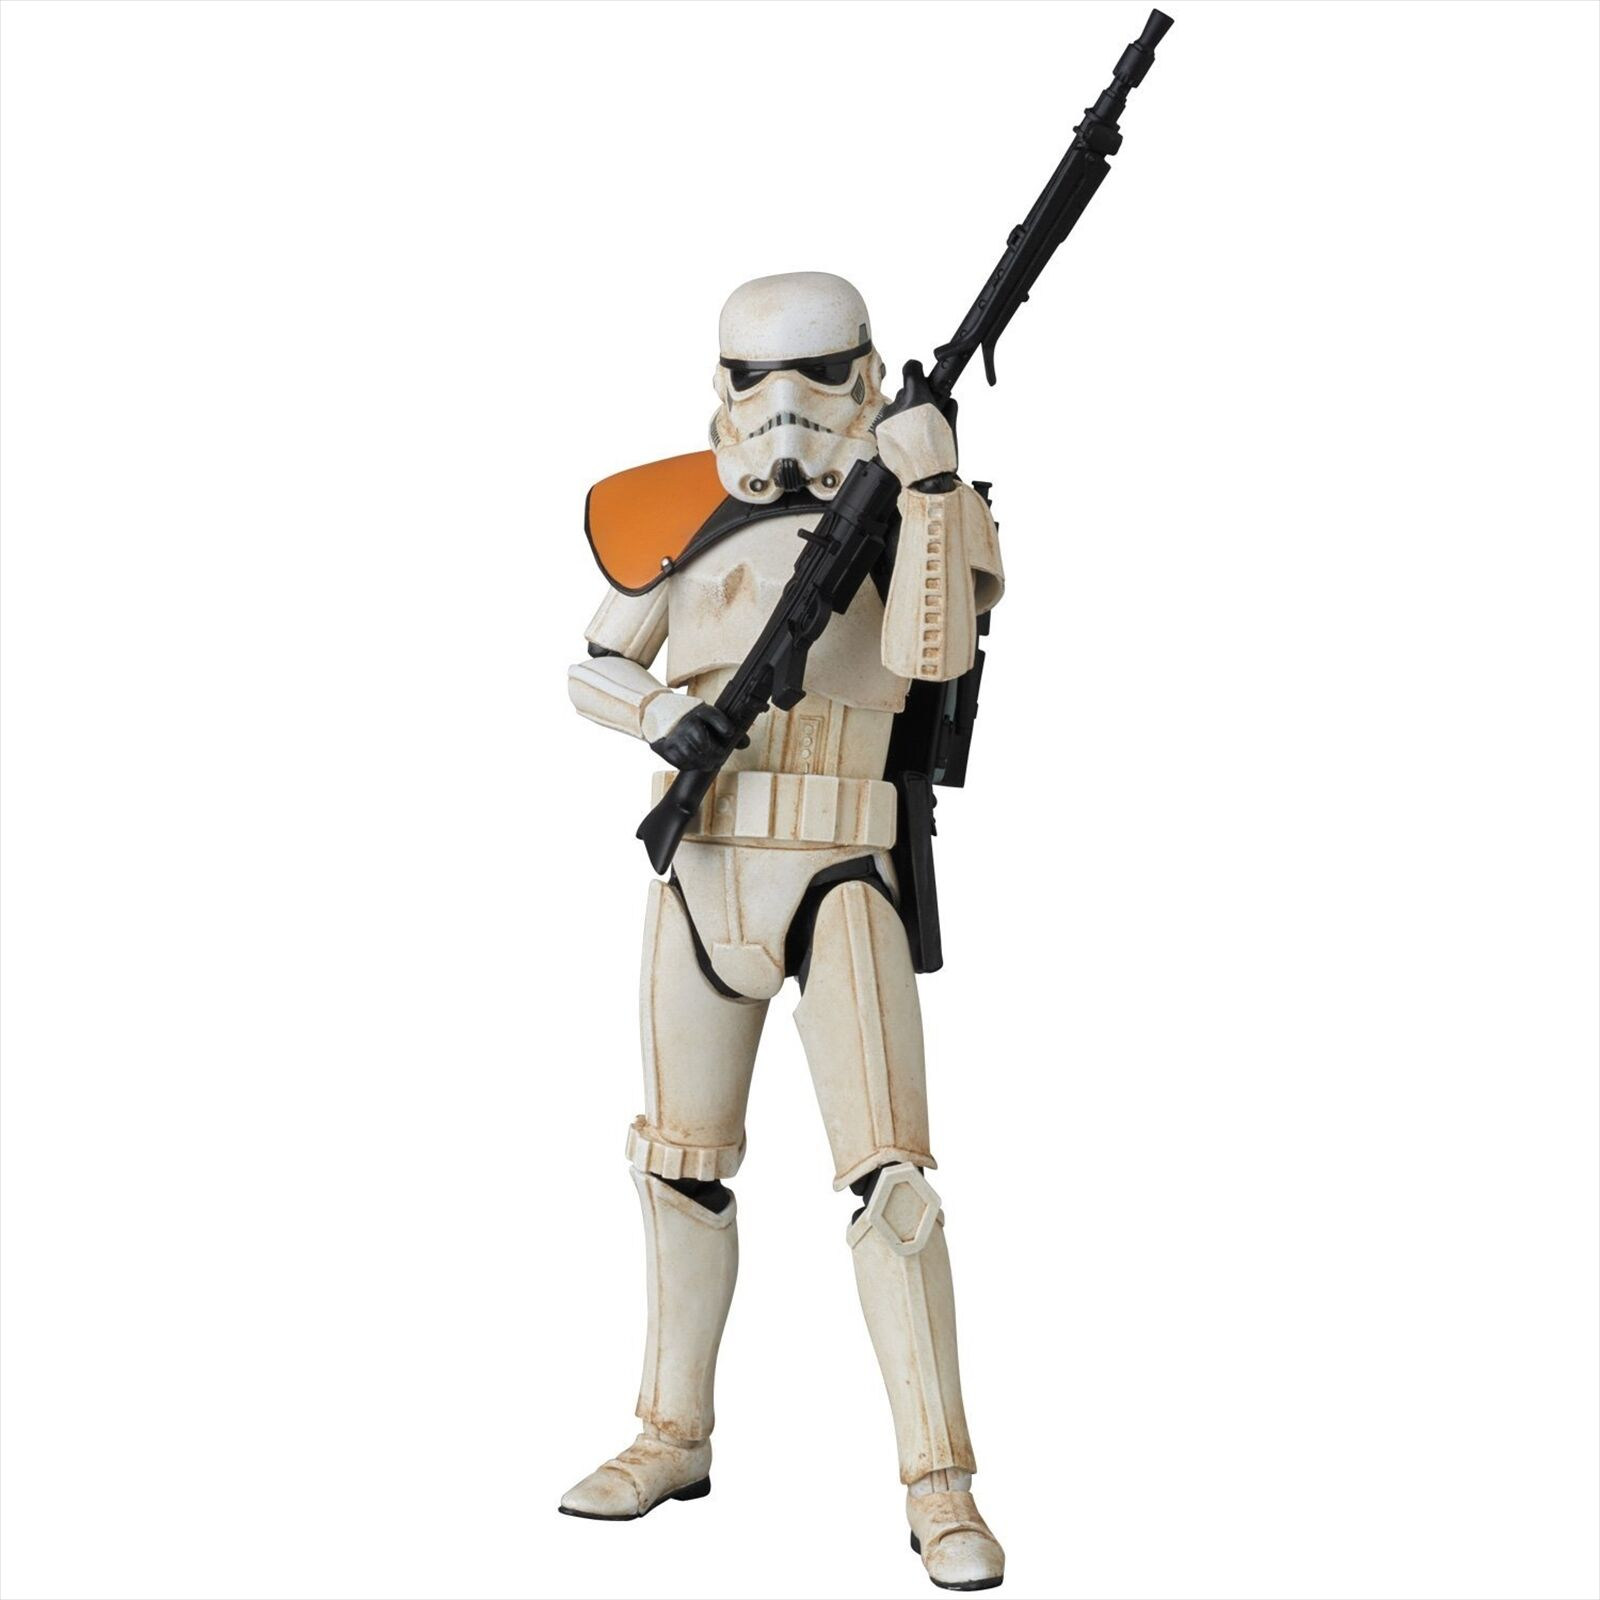 Mafex medicom sandtrooper star wars episode iv - action - figur